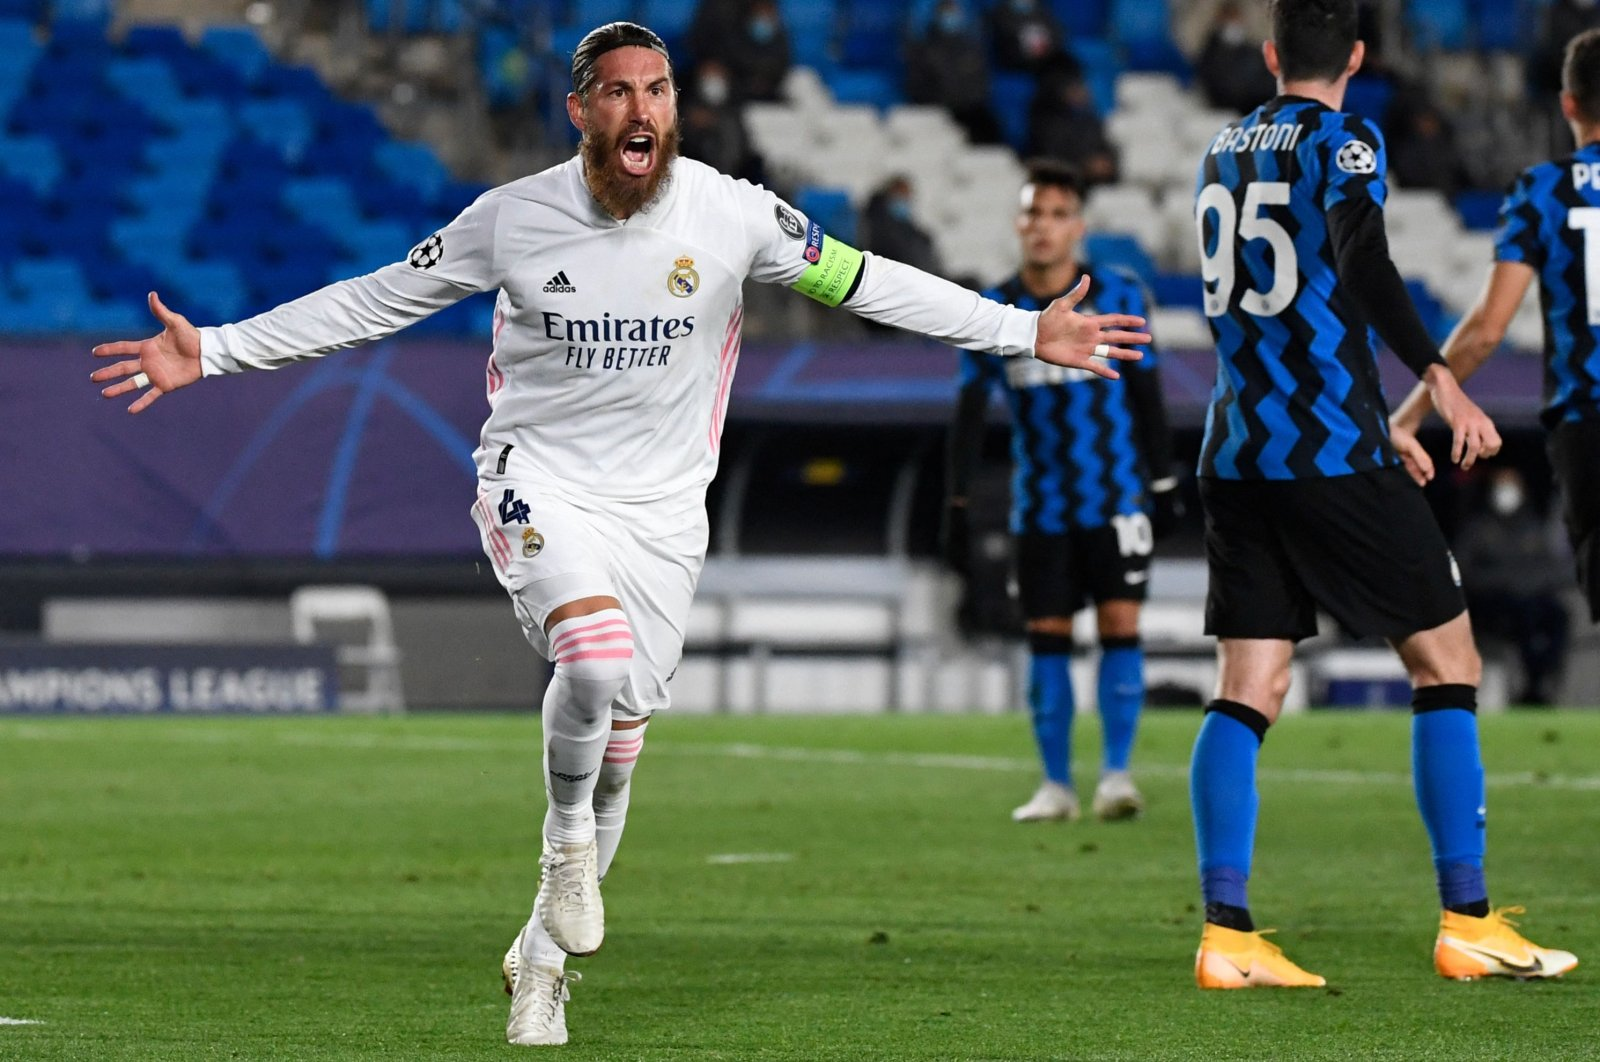 Real Madrid's Sergio Ramos celebrates his goal during a UEFA Champions League Group B match against Inter Milan at the Alfredo di Stefano stadium, Madrid, Spain, Nov. 3, 2020. (AFP Photo)